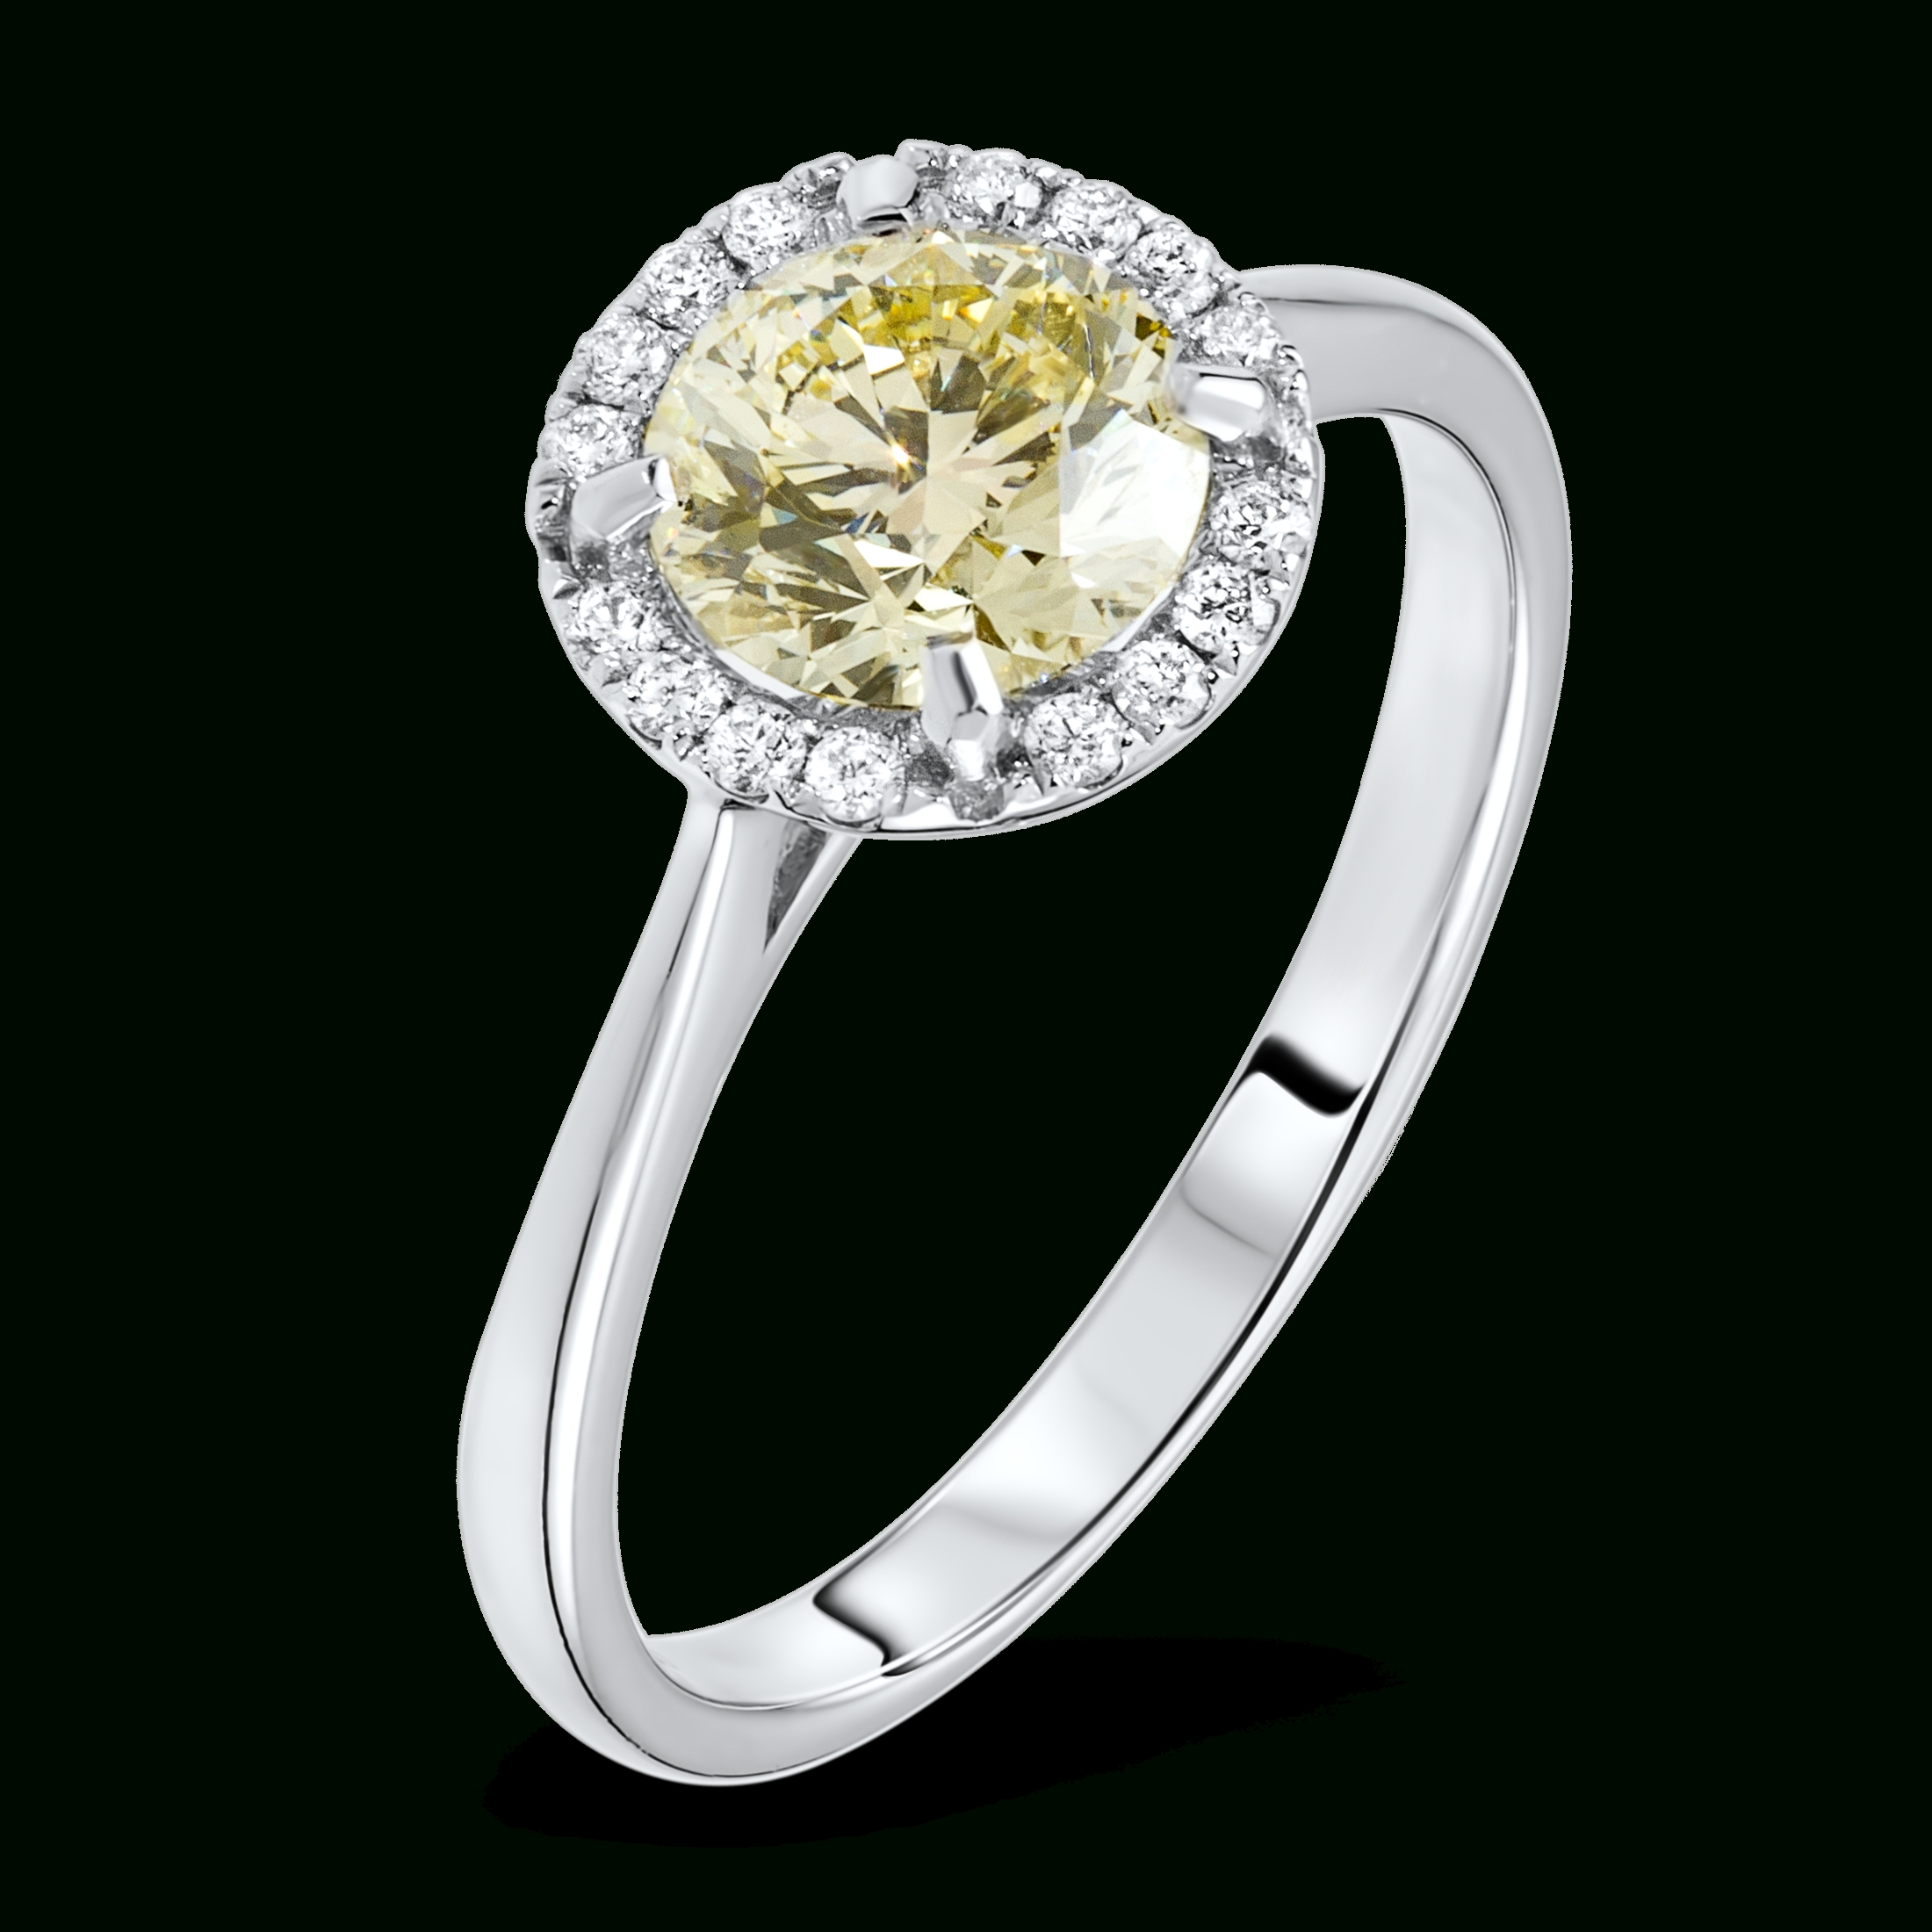 Diamond Ring With Fancy Yellow Diamond – Diamondland Within Extravagant Engagement Rings (View 4 of 15)